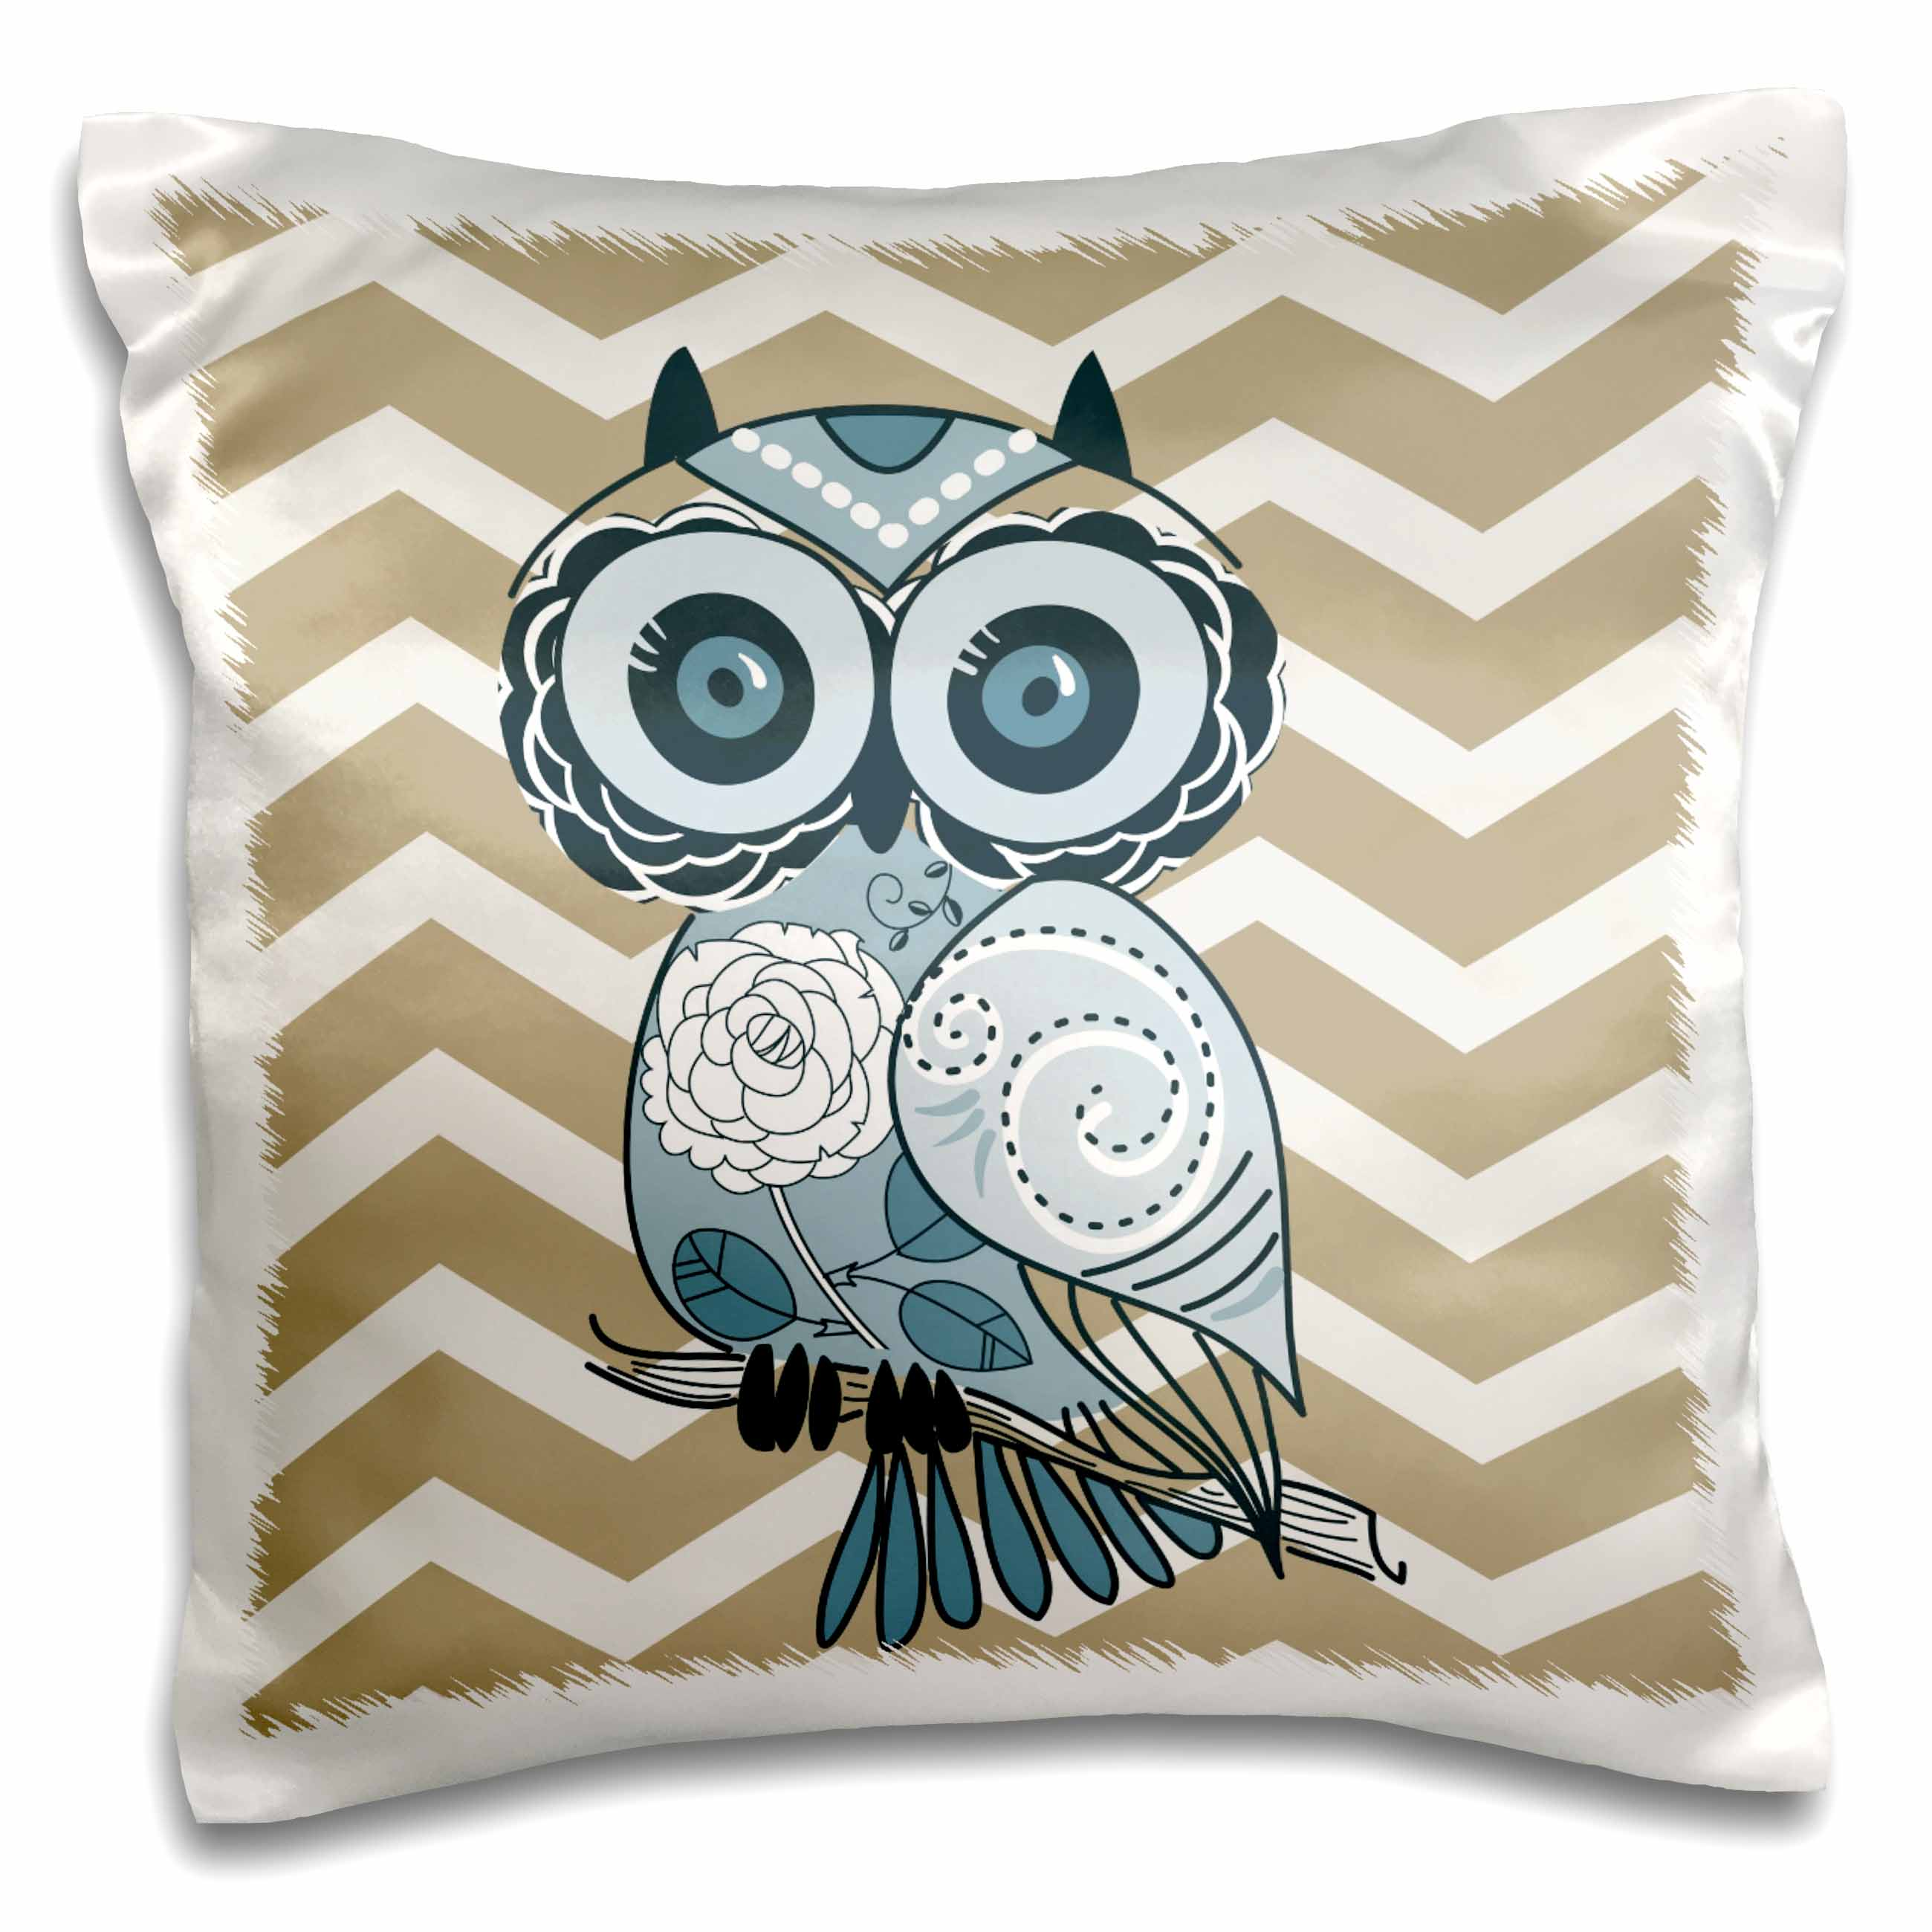 3dRose Blue Owl with beige and white chevron, Pillow Case, 16 by 16-inch